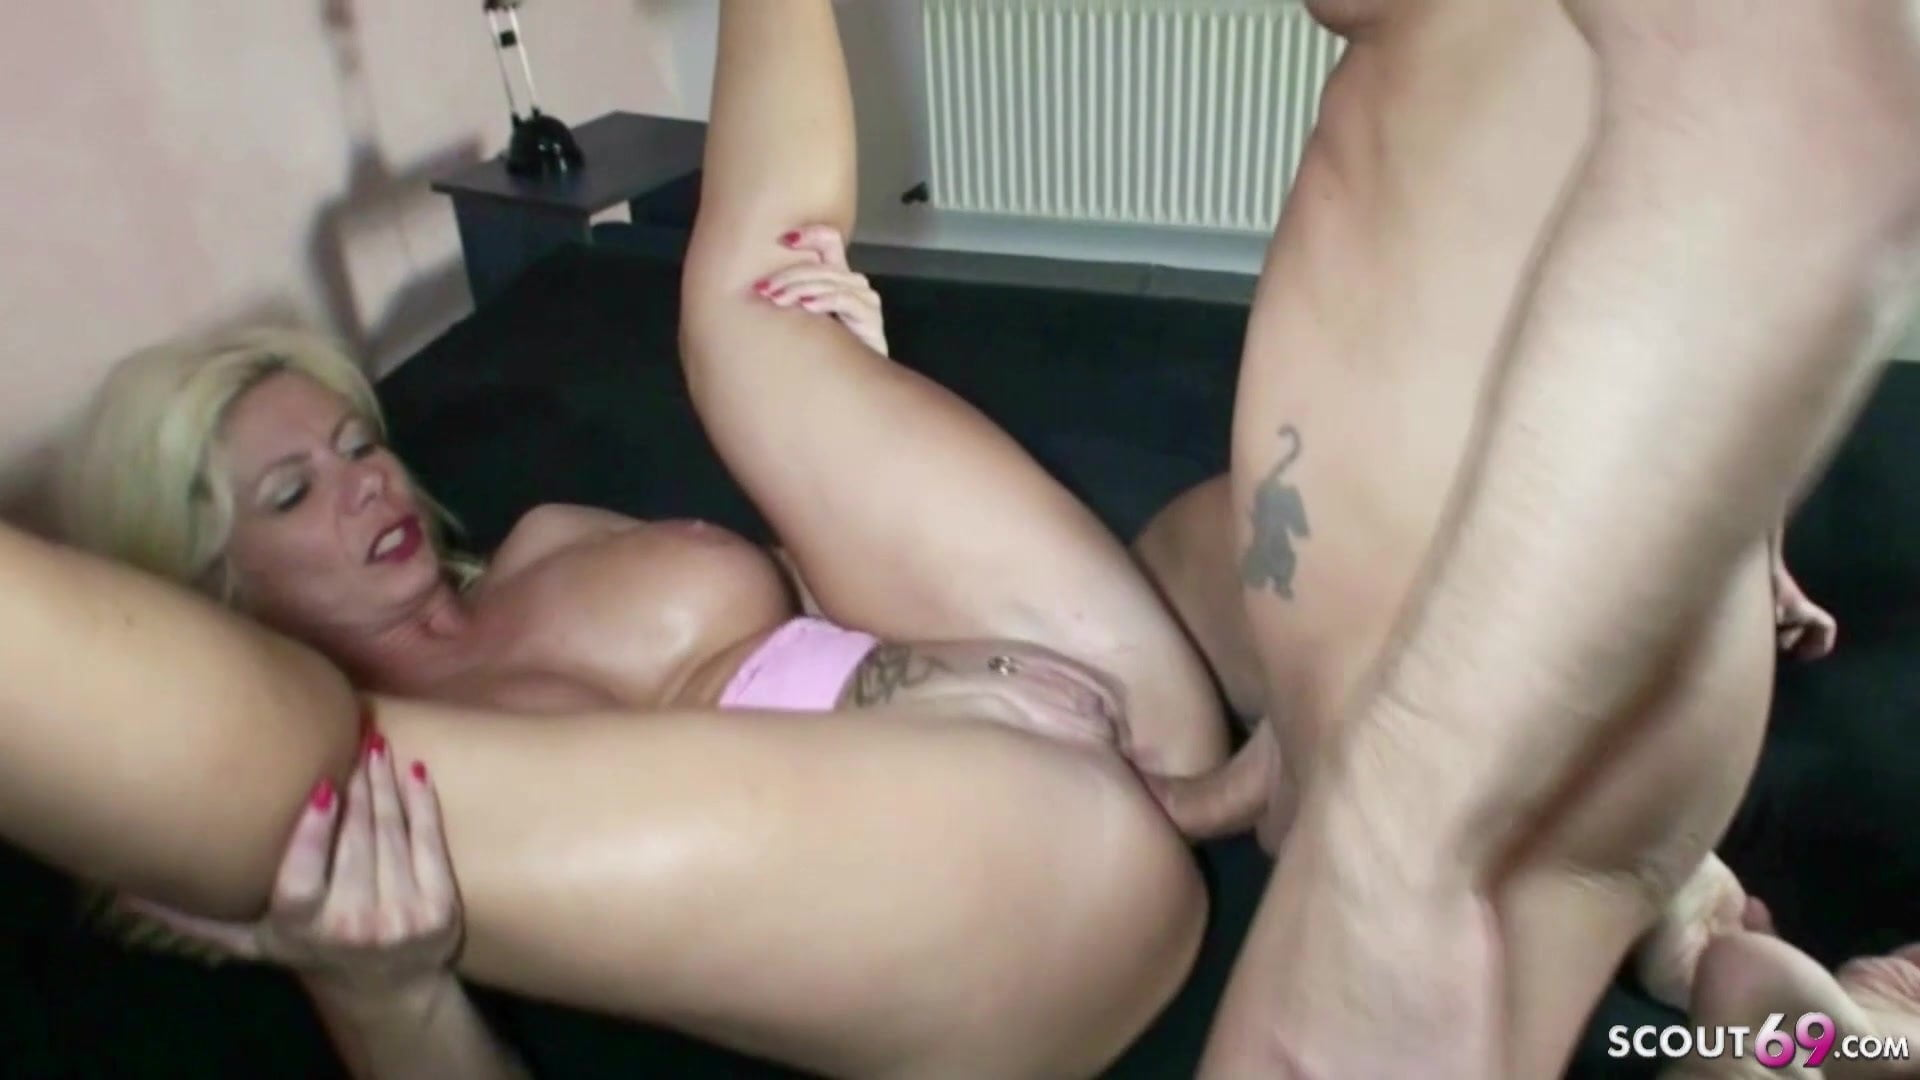 German Mature Anal Threesome